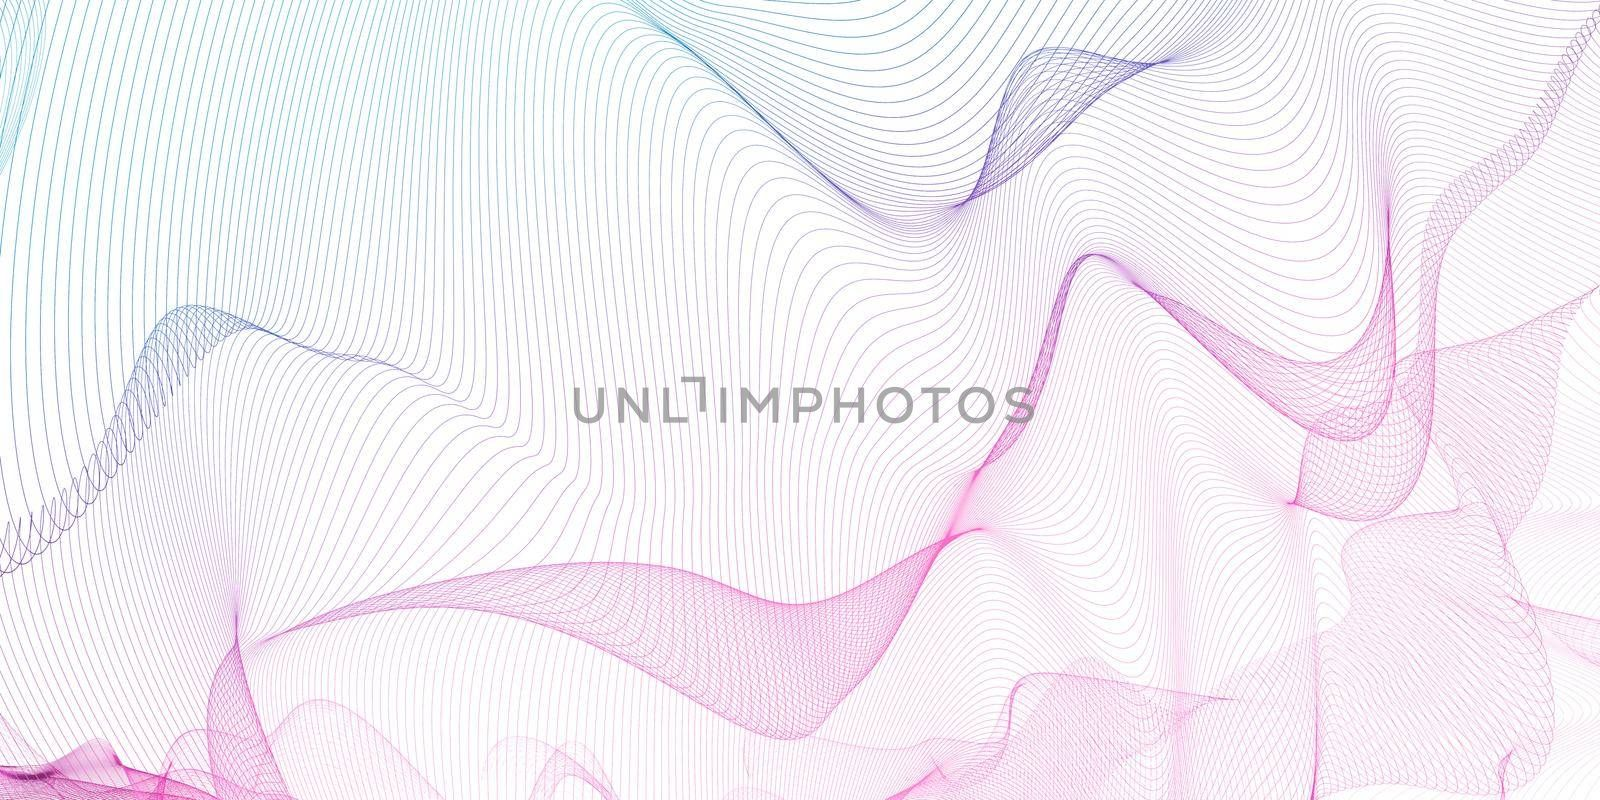 Beauty Wellness Science Marketing Abstract Background Art